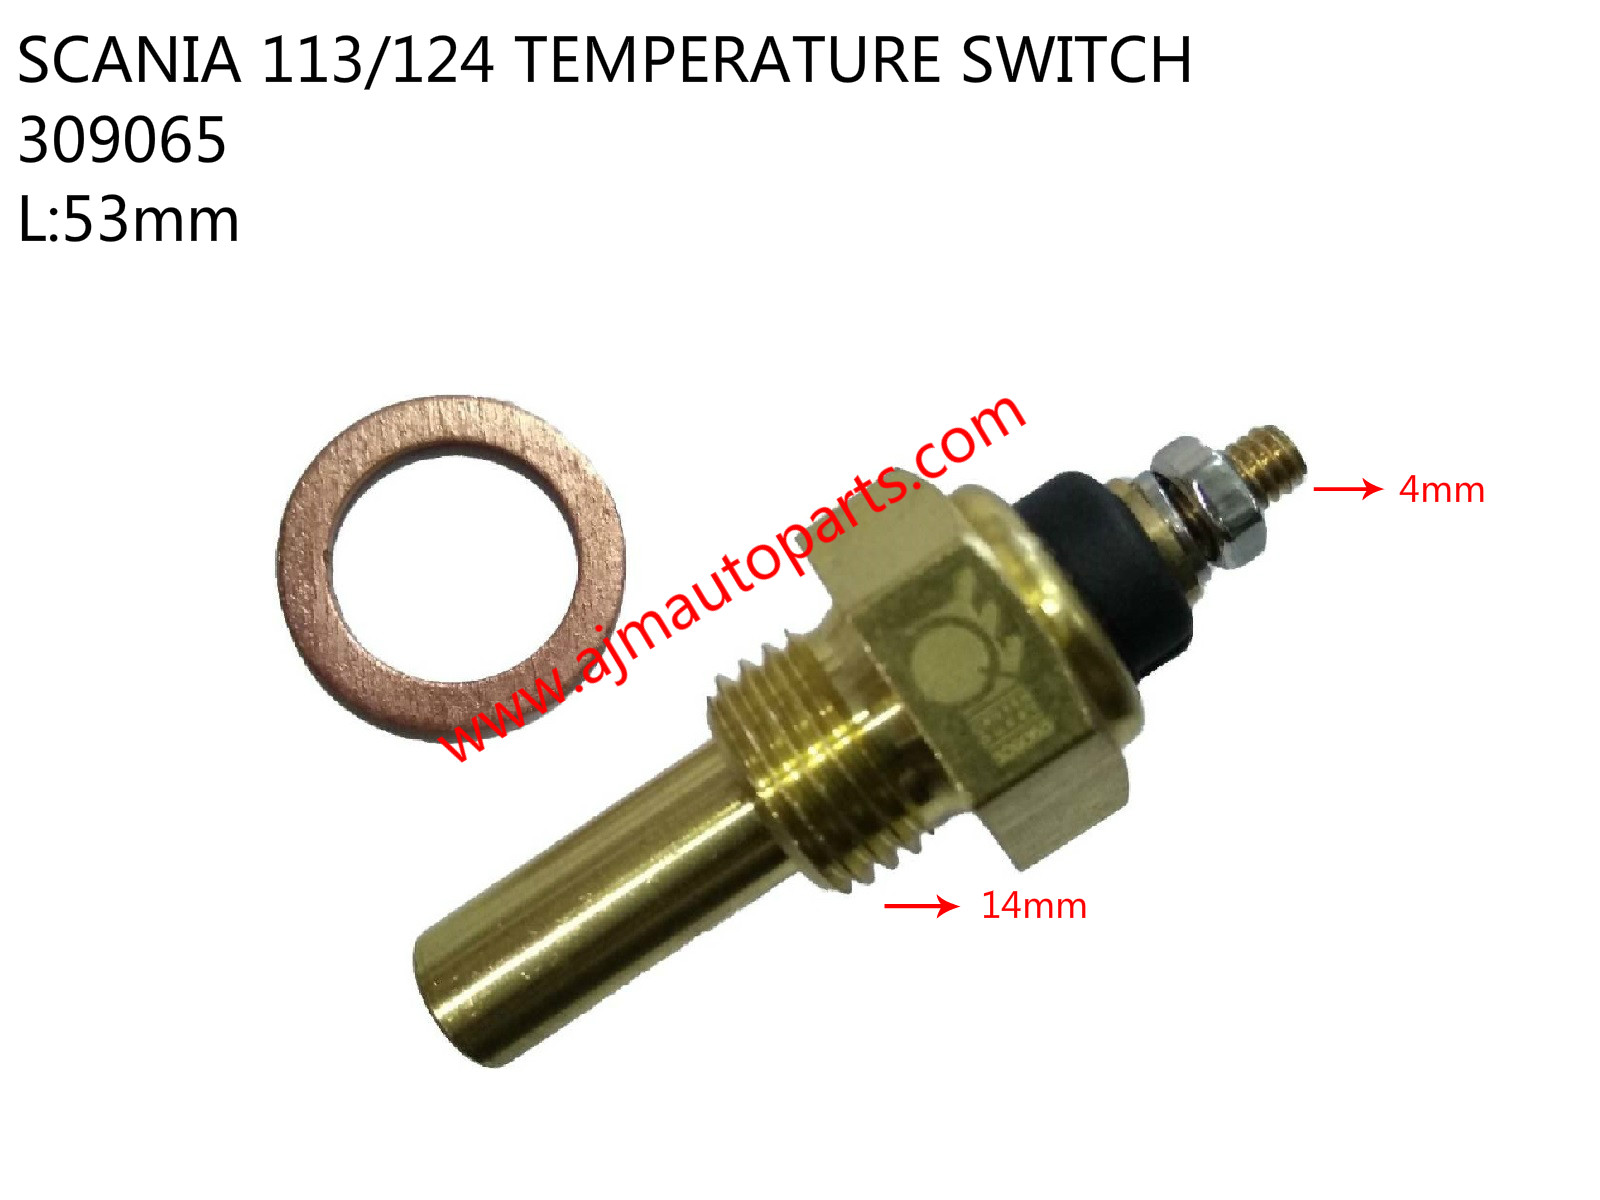 SCANIA 113/124 TEMPERATURE SWITCH-309065